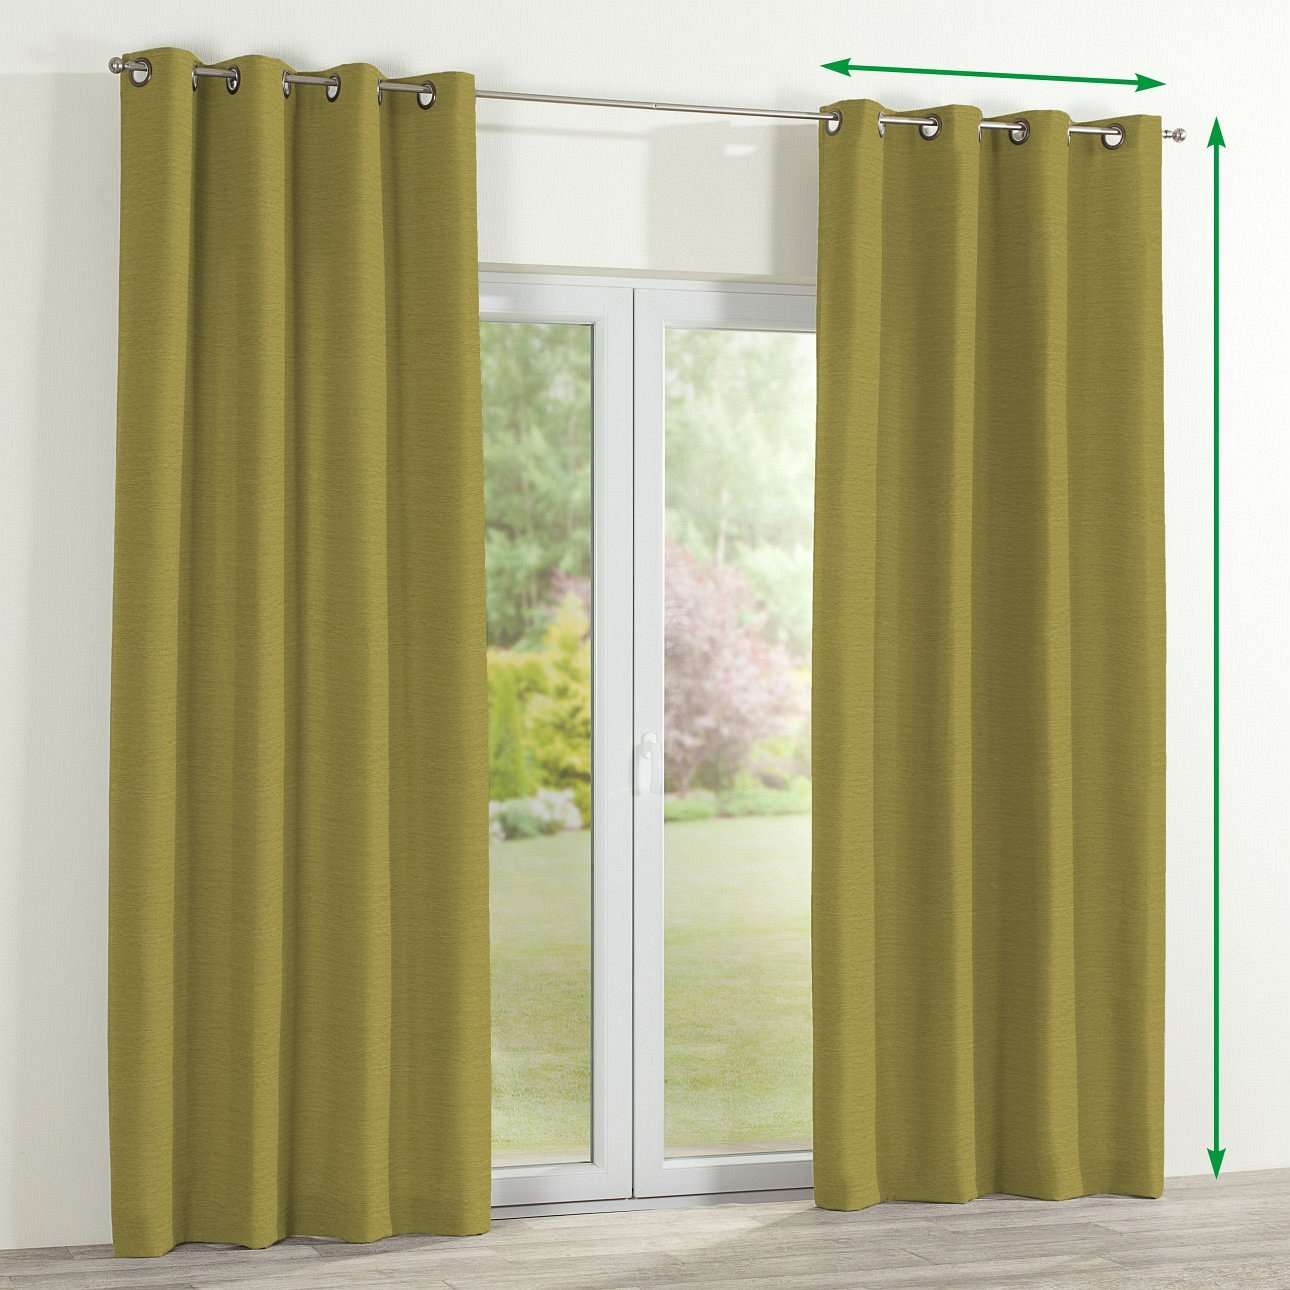 Eyelet lined curtains in collection Chenille, fabric: 160-47